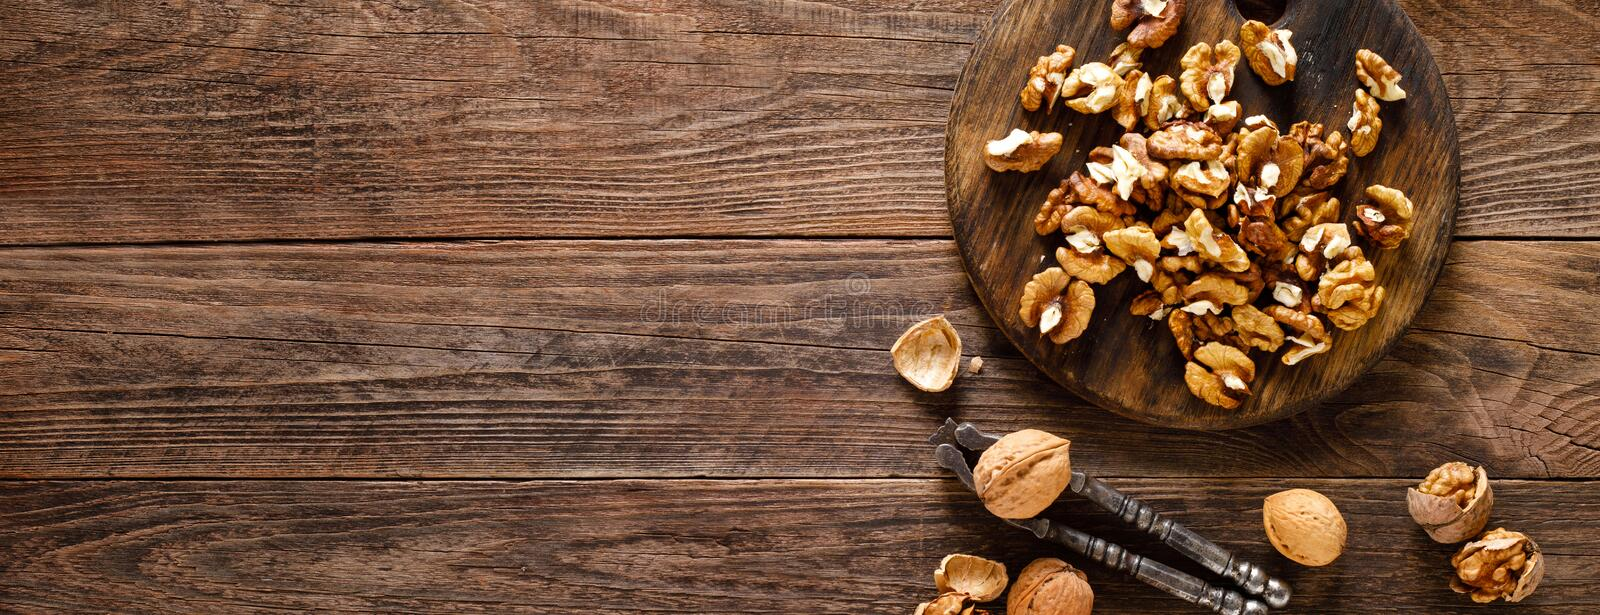 Walnuts. Kernels and whole nuts on wooden rustic table, banner closeup, top view. Walnuts. Kernels and whole nuts on wooden rustic table, banner, top view royalty free stock photos